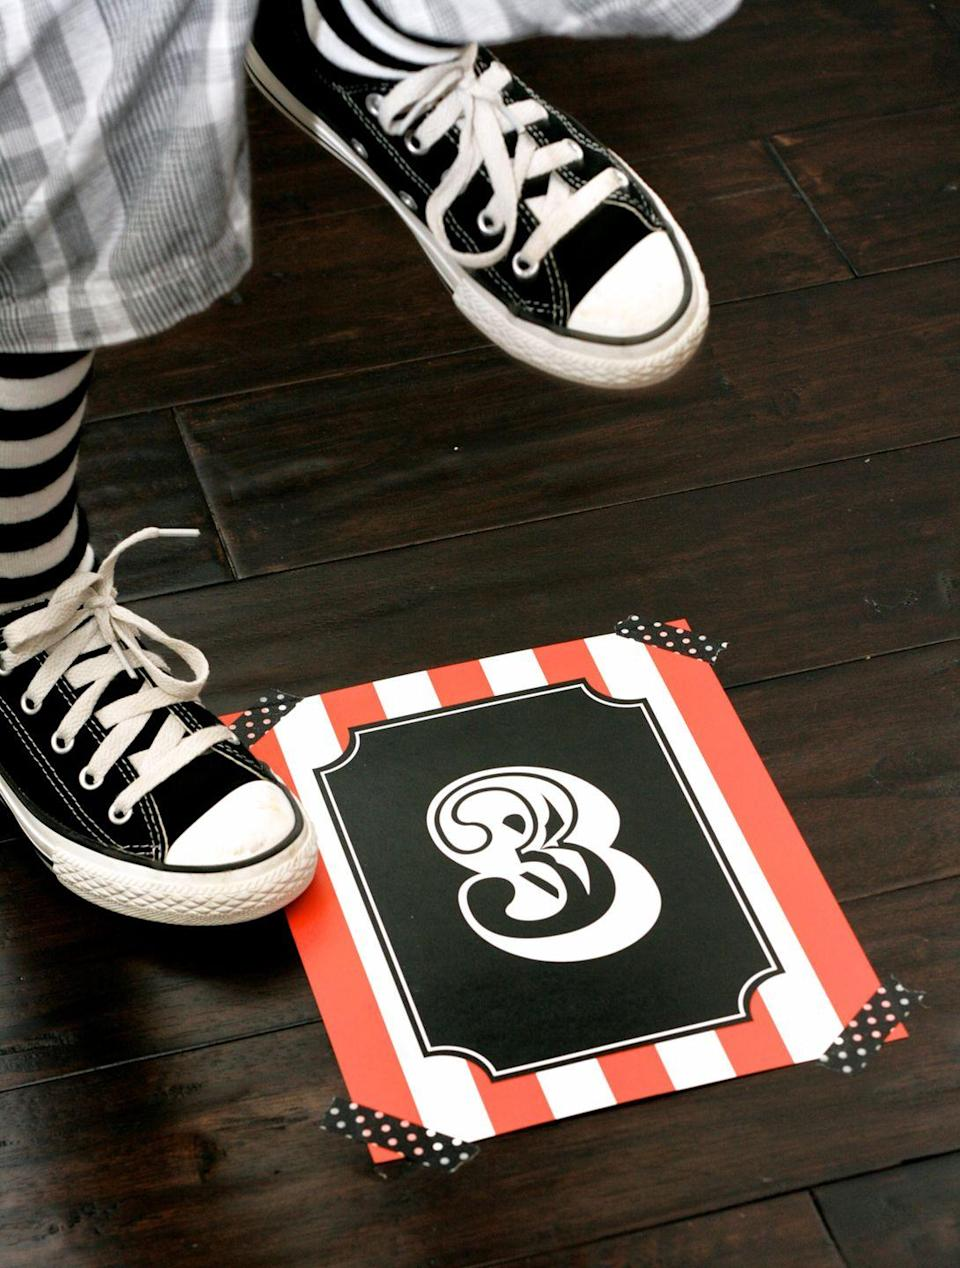 """<p>Think of this fun cakewalk game as similar to musical chairs. Kids walk around a circle of numbers on the floor — then stop on a number when the music stops. Whoever's standing on the number that's drawn from a tin wins!</p><p><em><a href=""""https://seevanessacraft.com/2016/09/halloween-cakewalk-party-printables/"""" rel=""""nofollow noopener"""" target=""""_blank"""" data-ylk=""""slk:Get a free printable at See Vanessa Craft »"""" class=""""link rapid-noclick-resp"""">Get a free printable at See Vanessa Craft »</a></em></p><p><strong>RELATED:</strong> <a href=""""https://www.goodhousekeeping.com/holidays/halloween-ideas/g33264944/halloween-printables/"""" rel=""""nofollow noopener"""" target=""""_blank"""" data-ylk=""""slk:15 Free Halloween Printables for Fun Decor, Games, Treats, and More"""" class=""""link rapid-noclick-resp"""">15 Free Halloween Printables for Fun Decor, Games, Treats, and More</a><br></p>"""